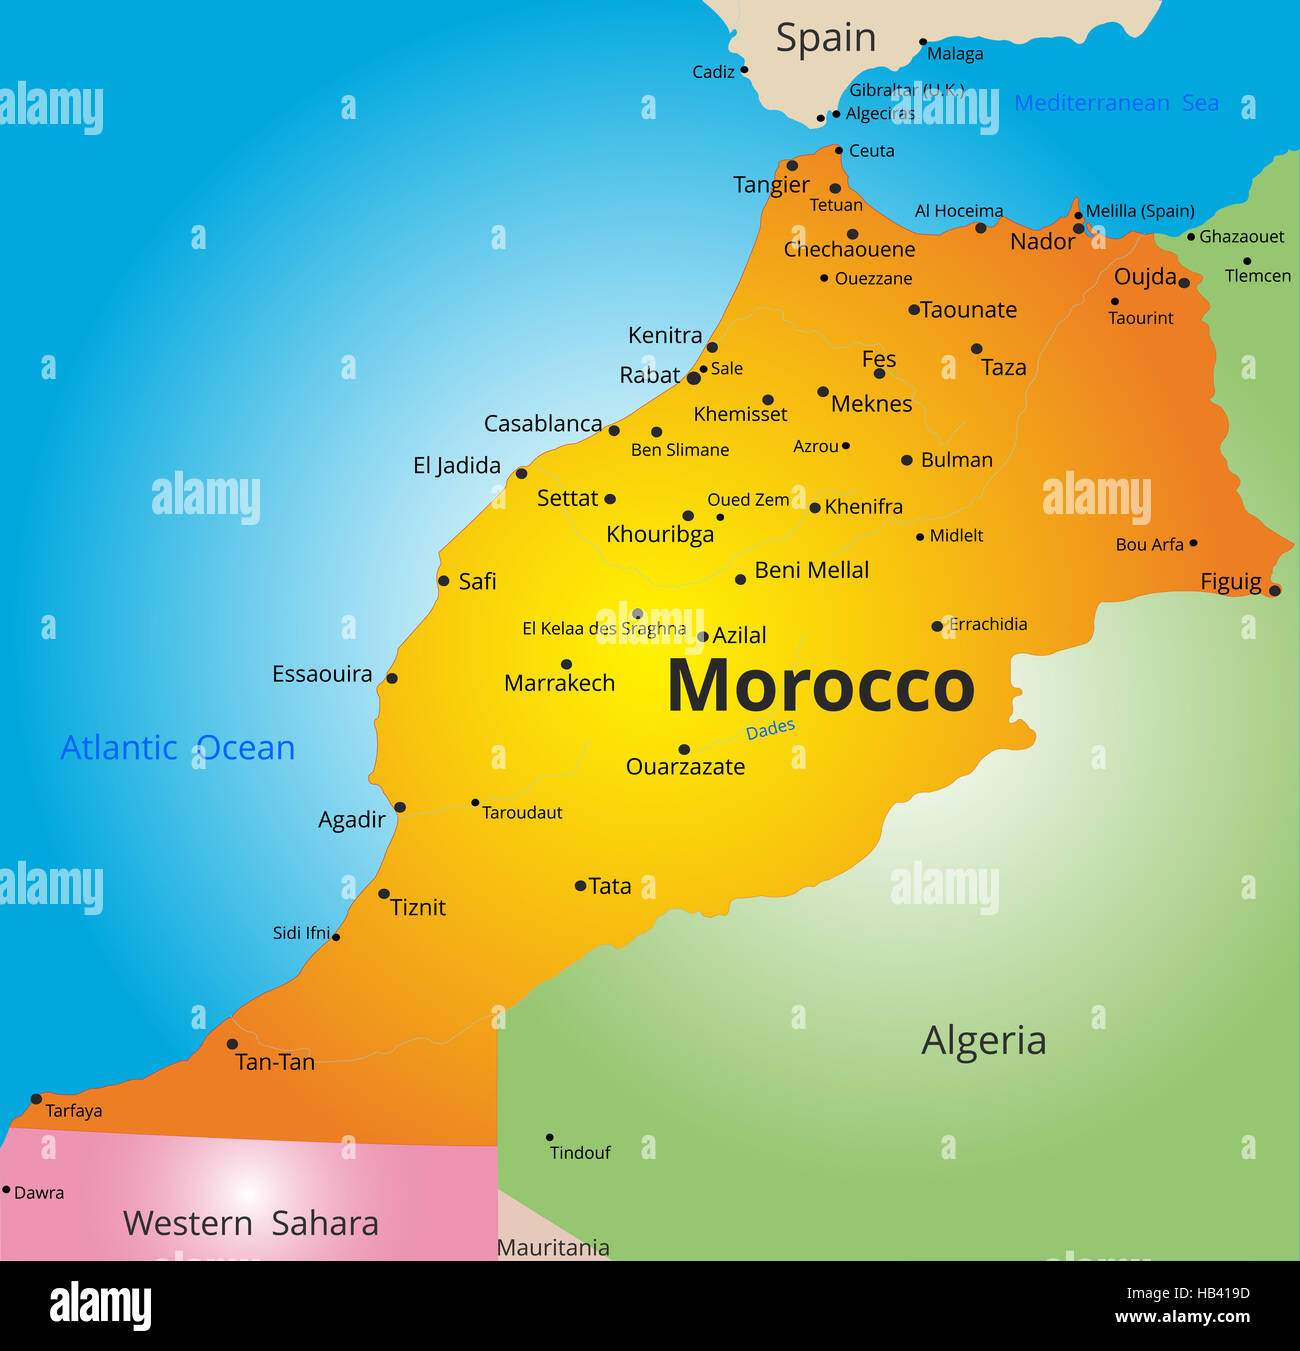 Color Map Of Morocco Country Stock Photo Royalty Free Image - Map of morocco